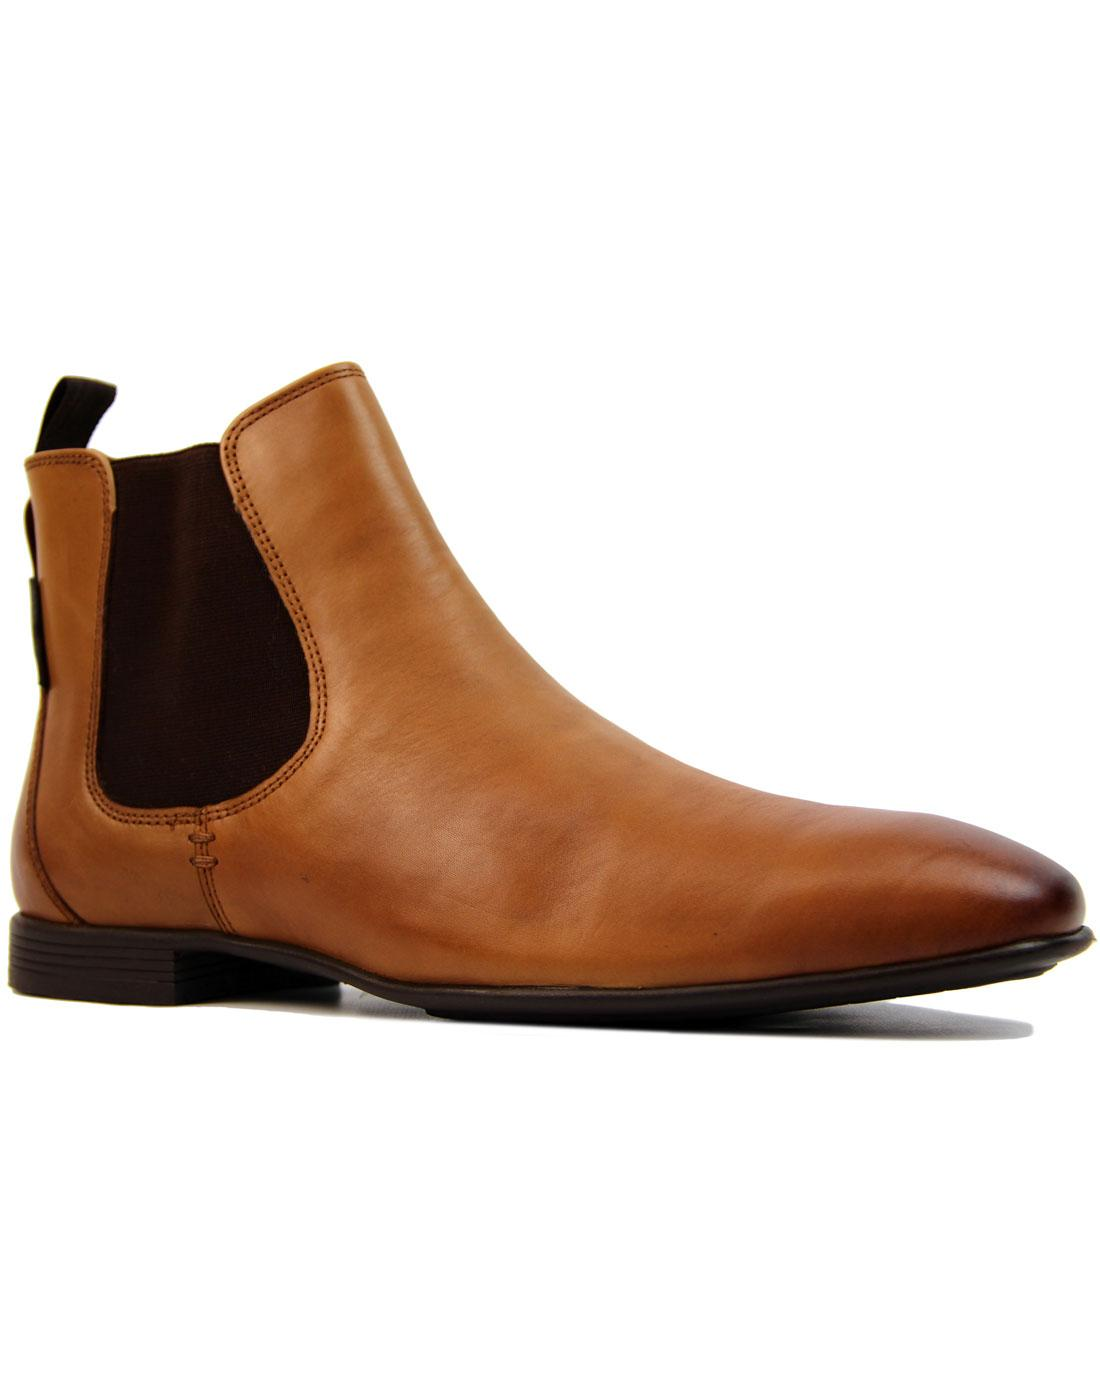 982c9996104 BEN SHERMAN Archibald 60s Mod Smooth Leather Chelsea Boots in Tan